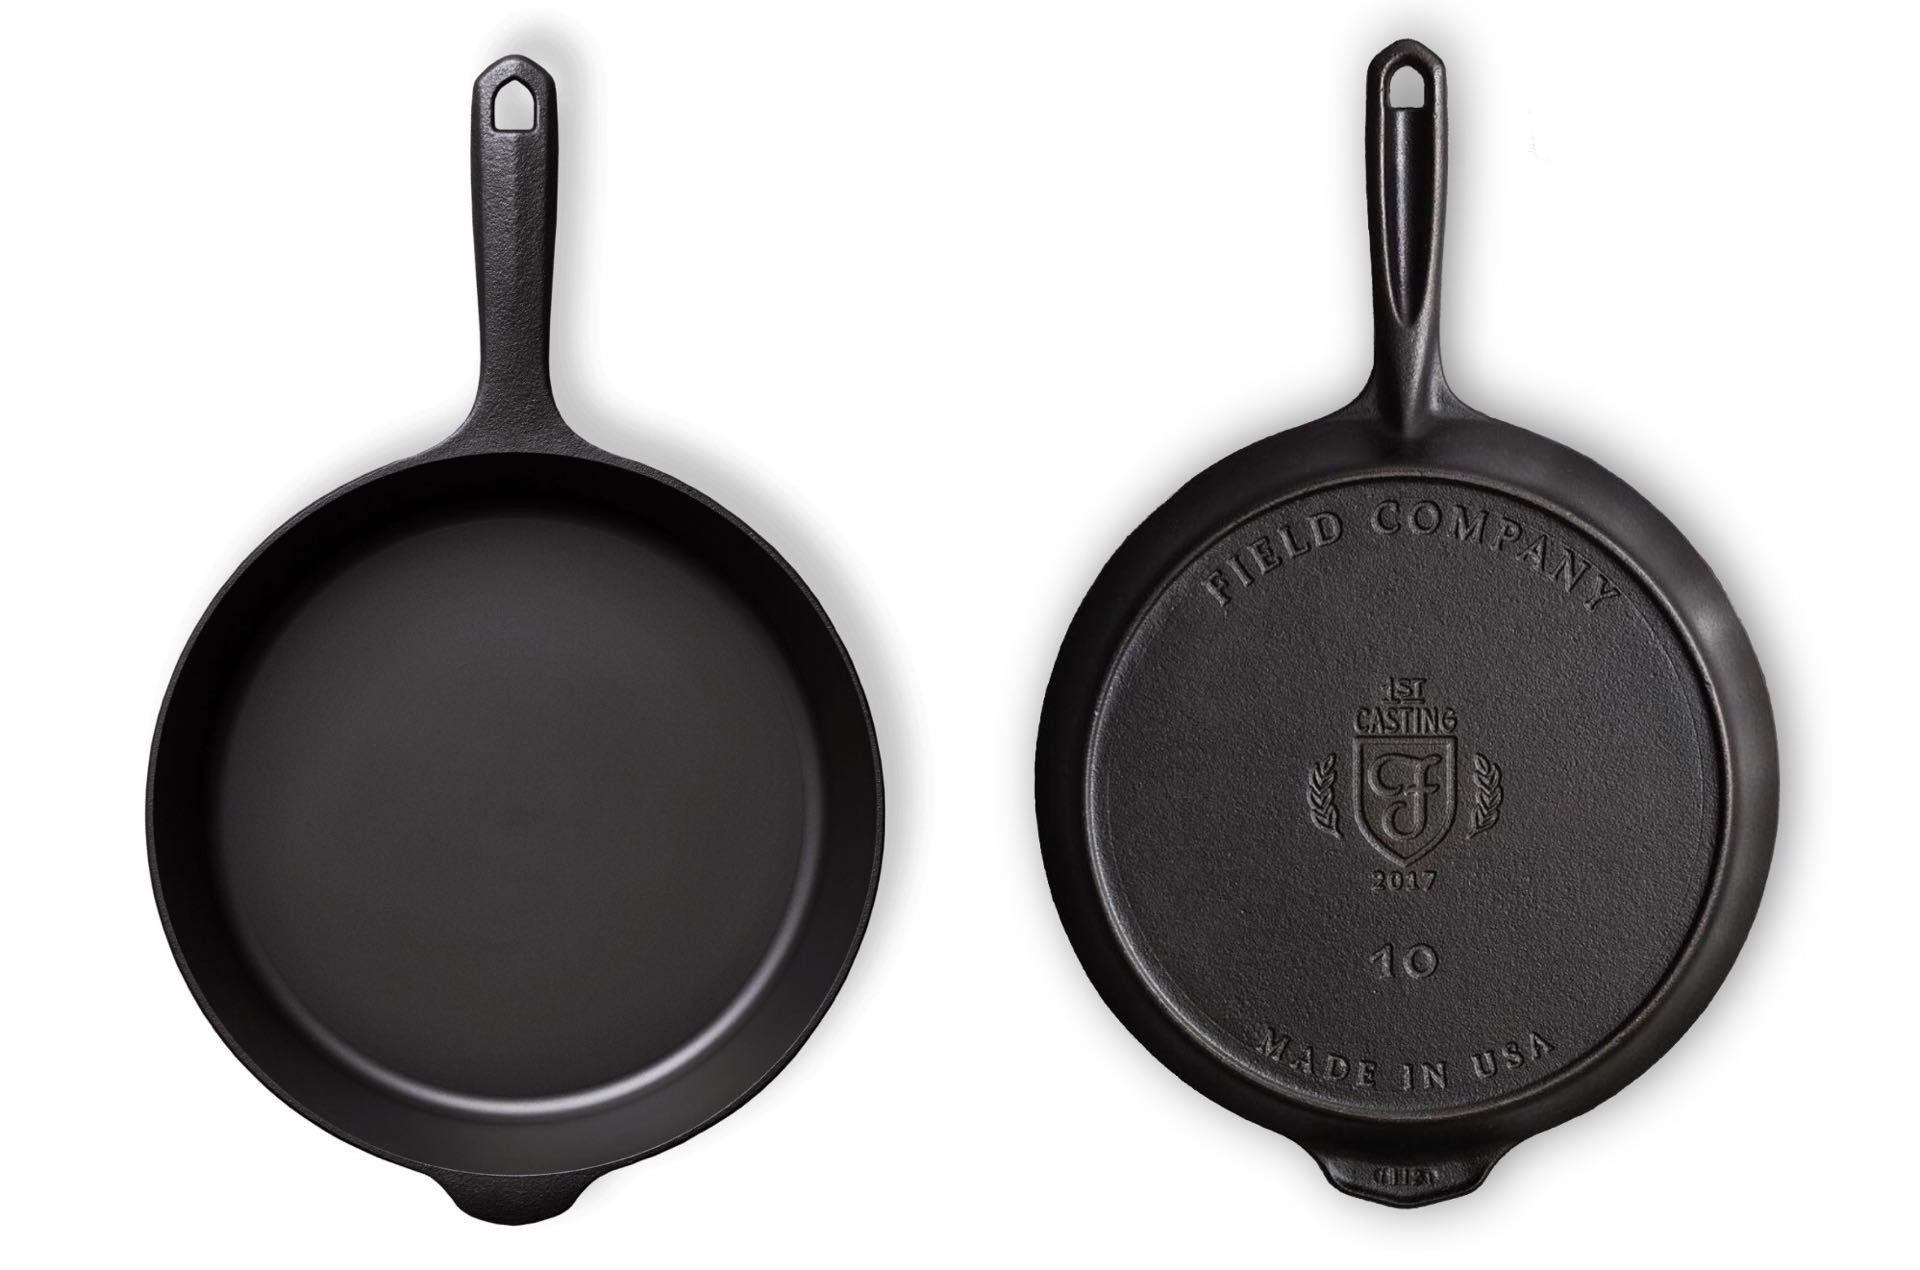 Field Company cast iron skillet. ($125 for № 8 size, $160 for № 10 size)